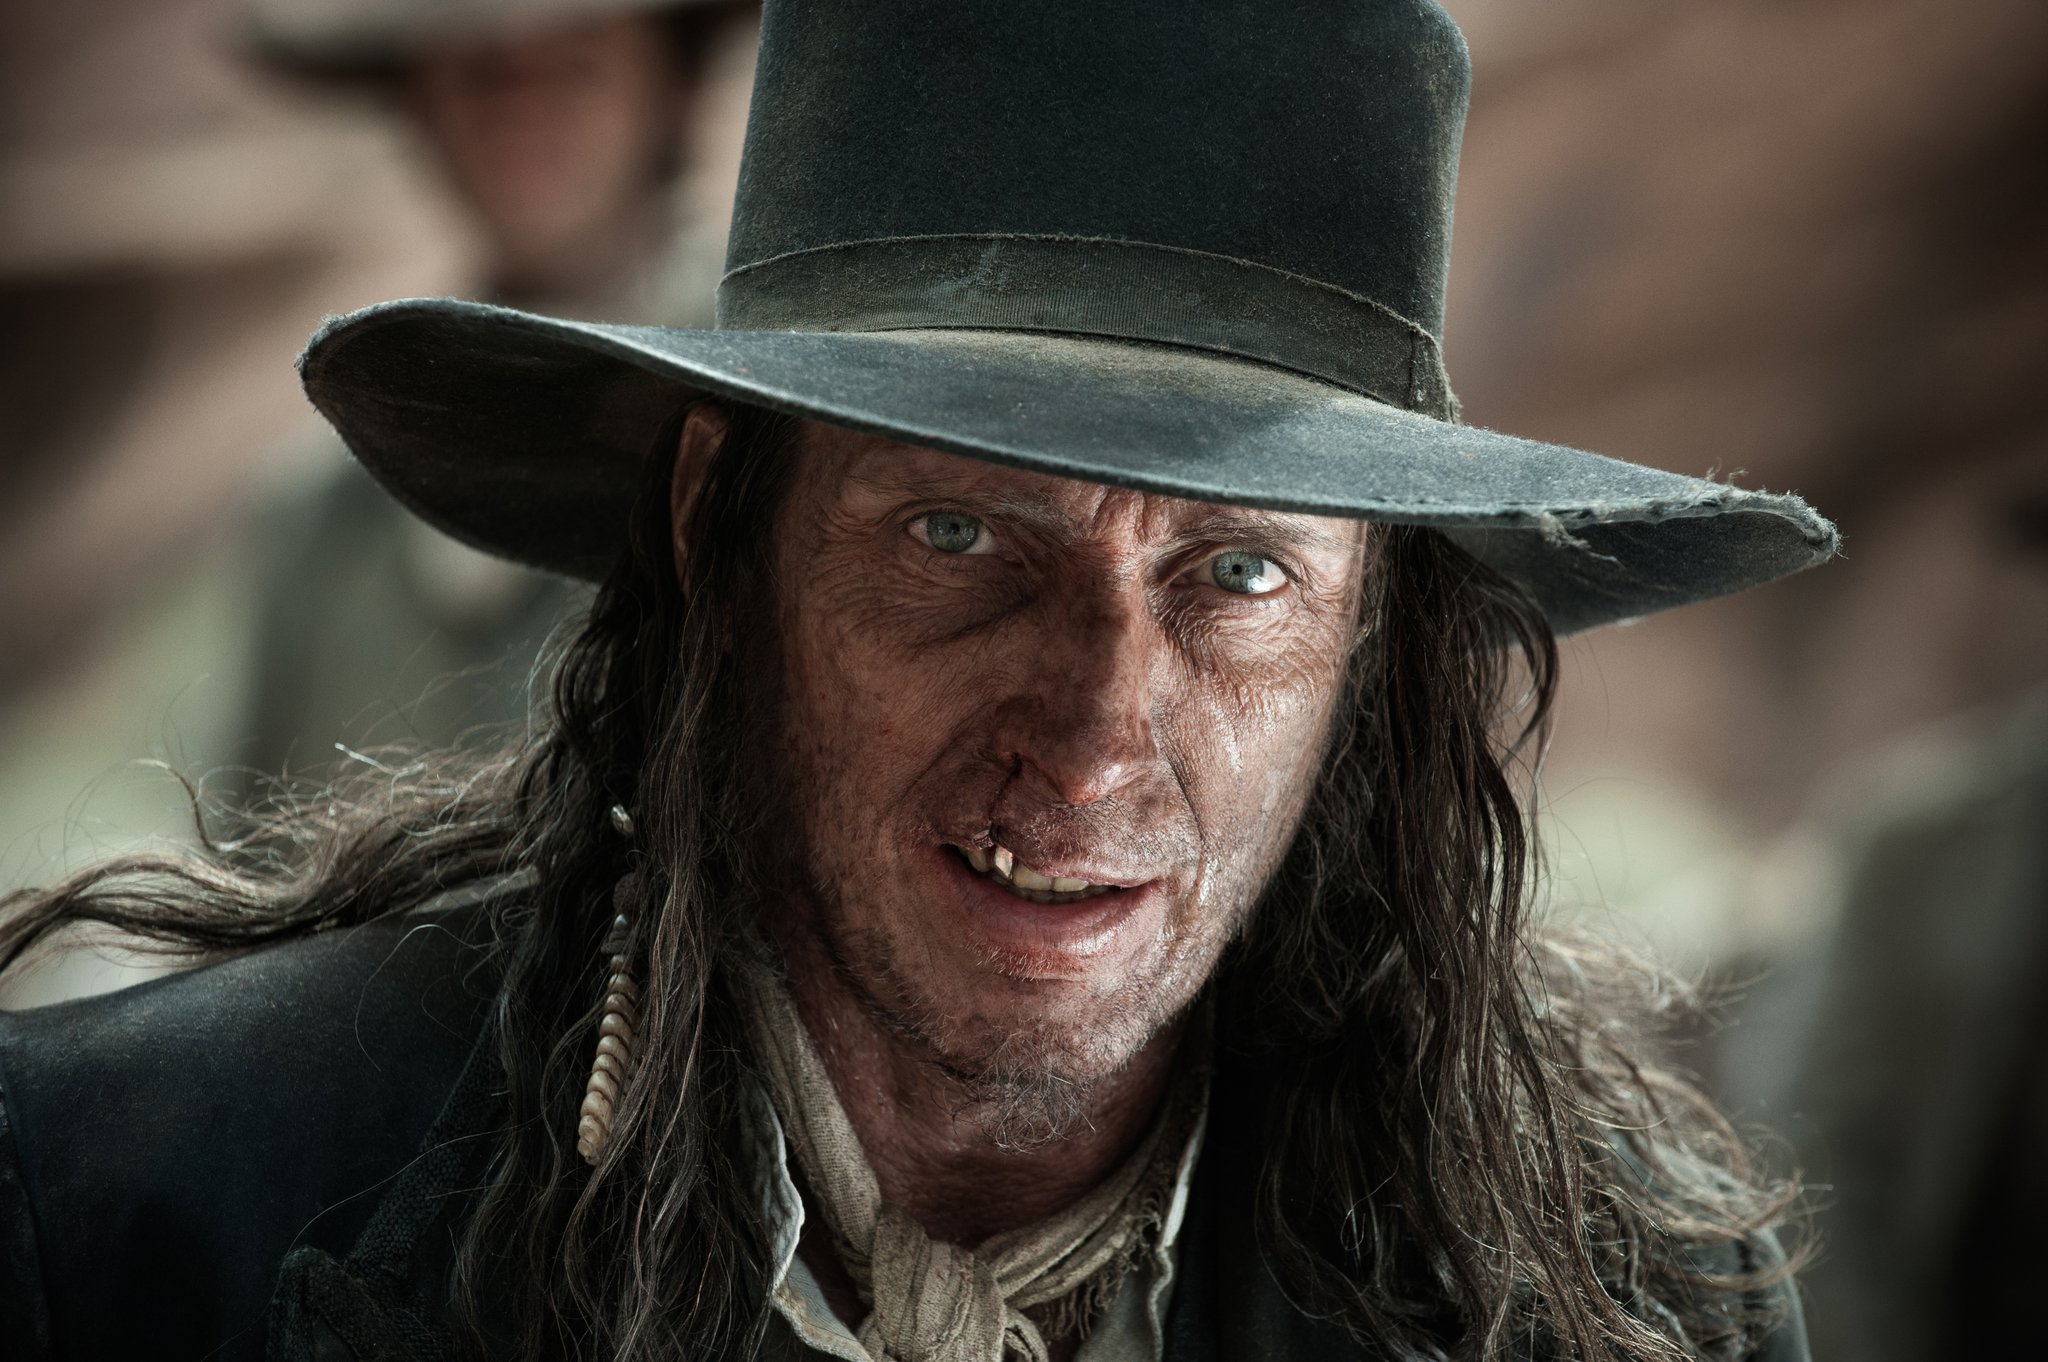 william-fichtner-as-butch-cavendish-in-the-lone-ranger.jpg